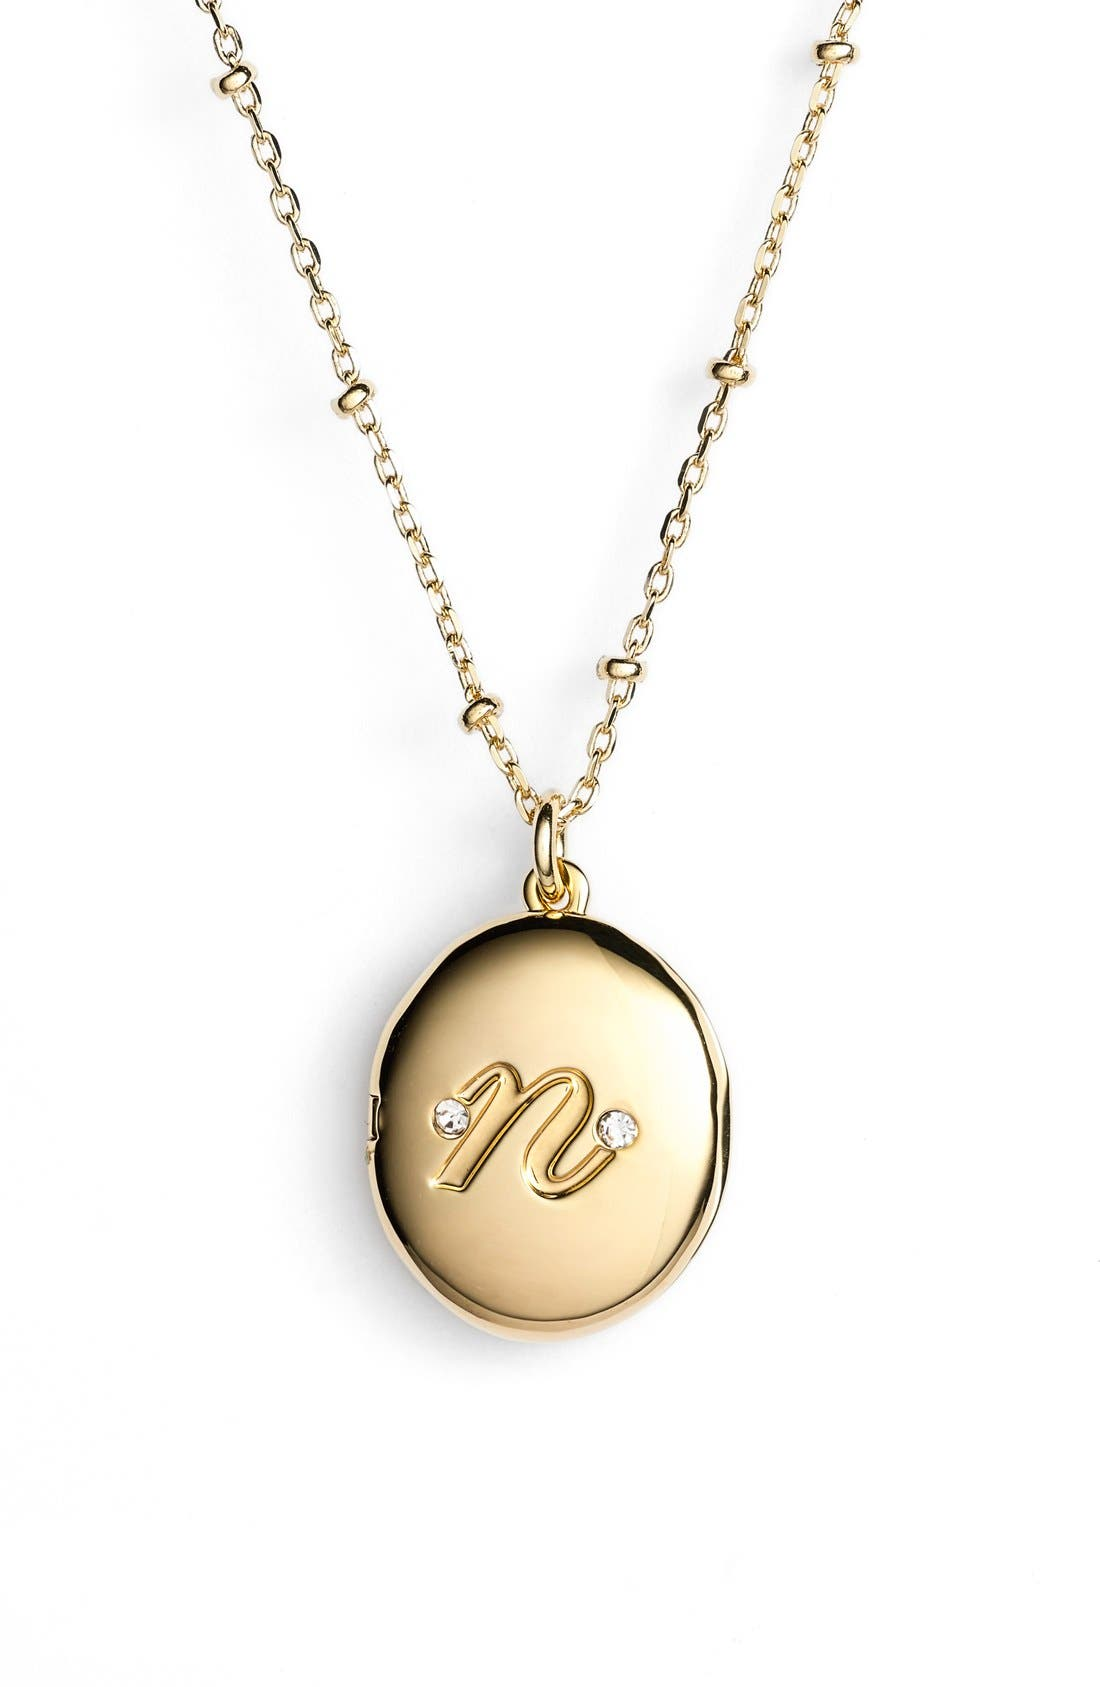 round addiction lockets a initial build locket floating charm eve s glass necklace gold